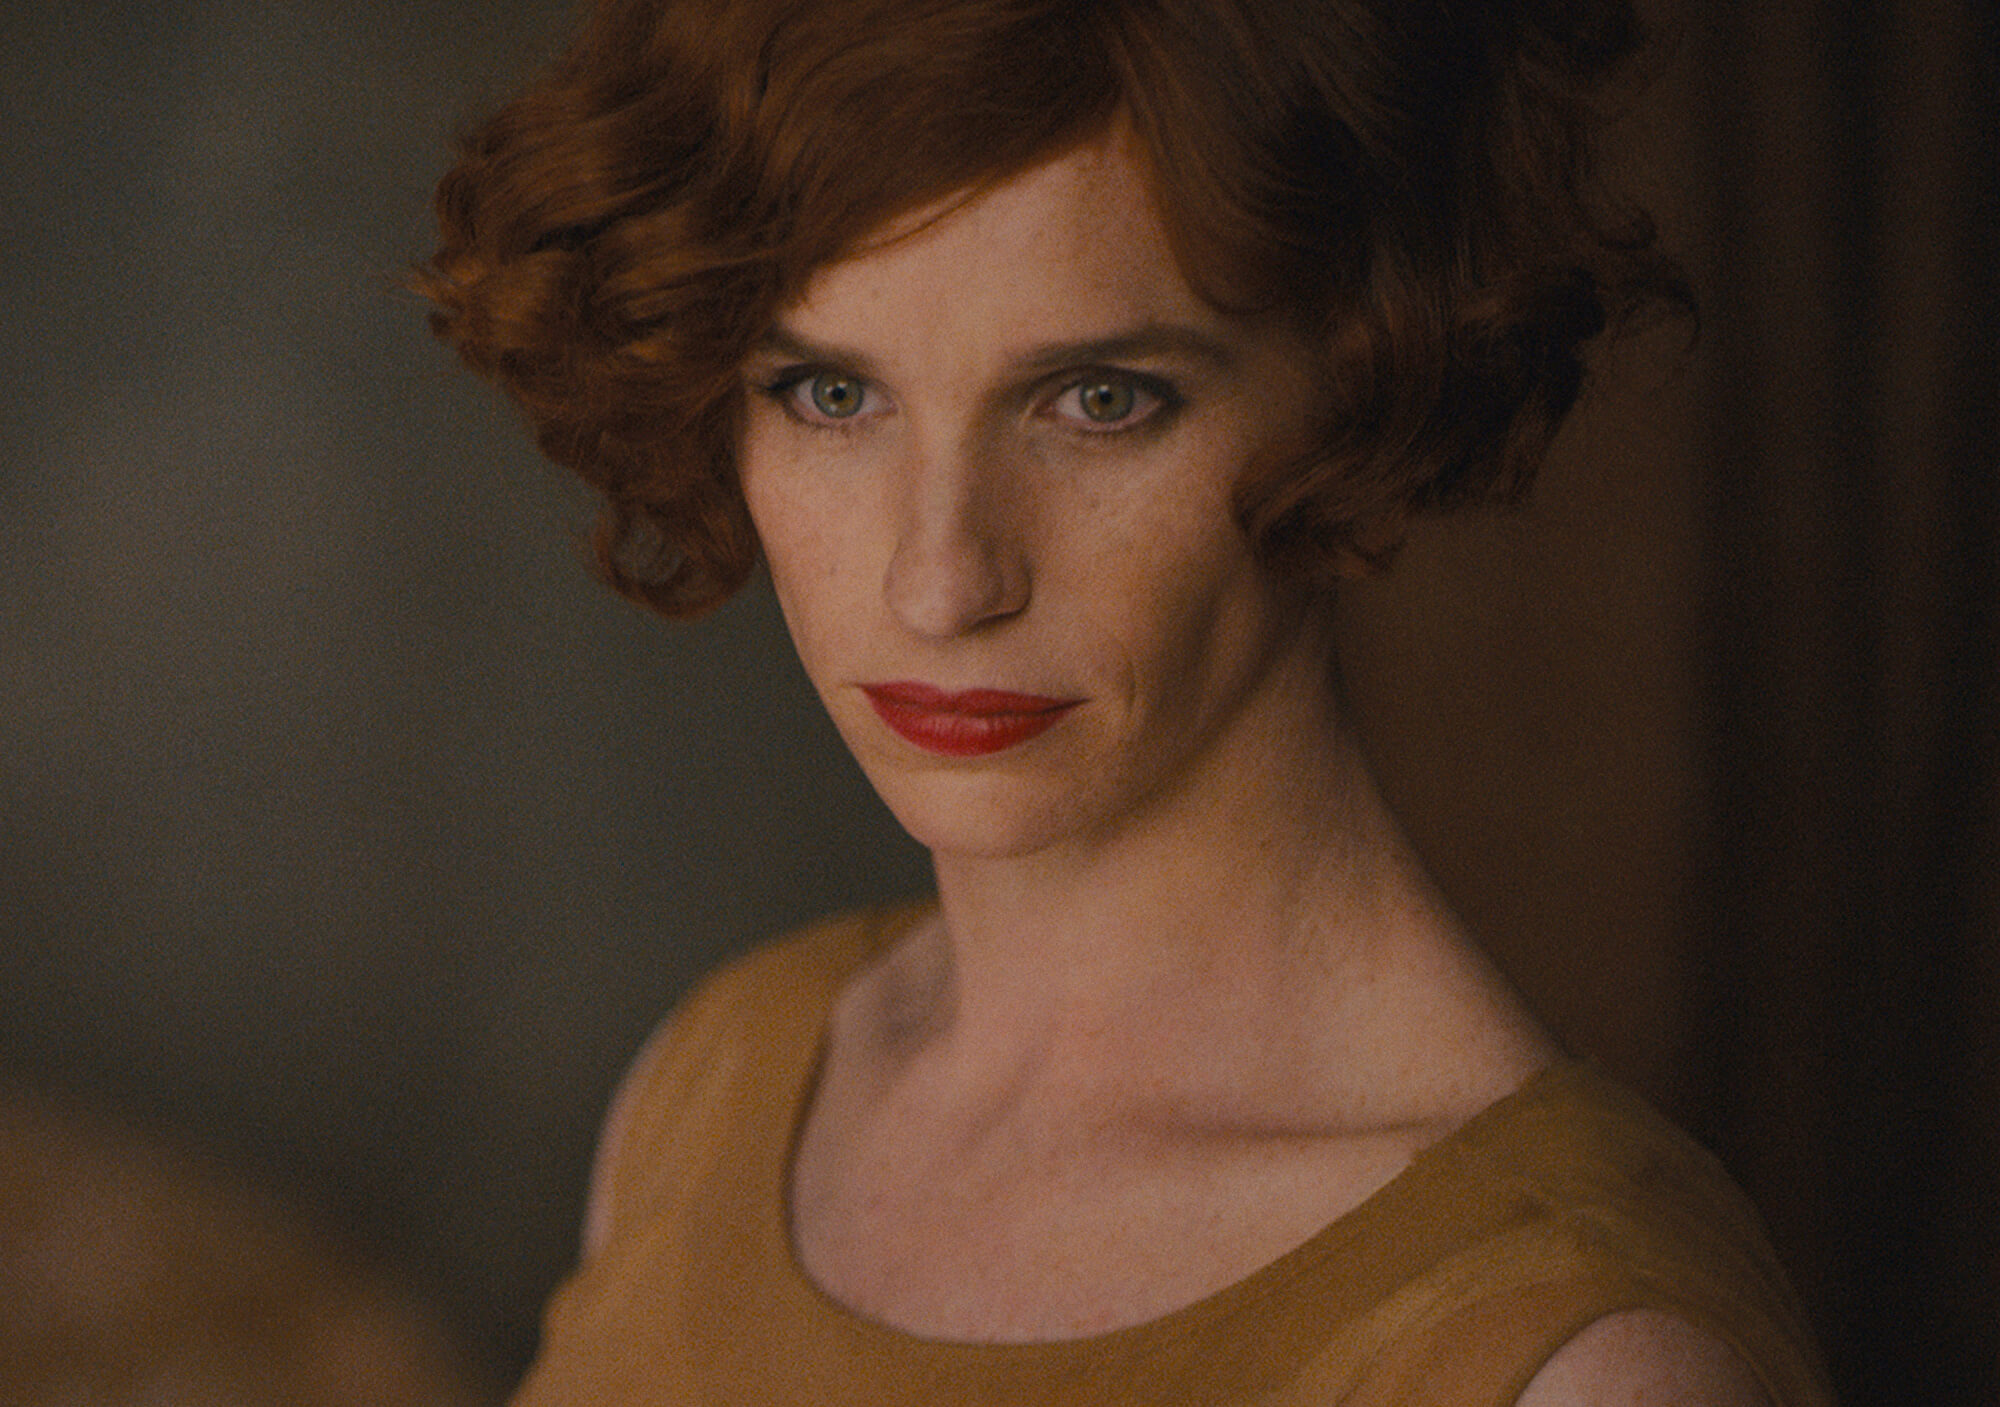 Video still from The Danish Girl